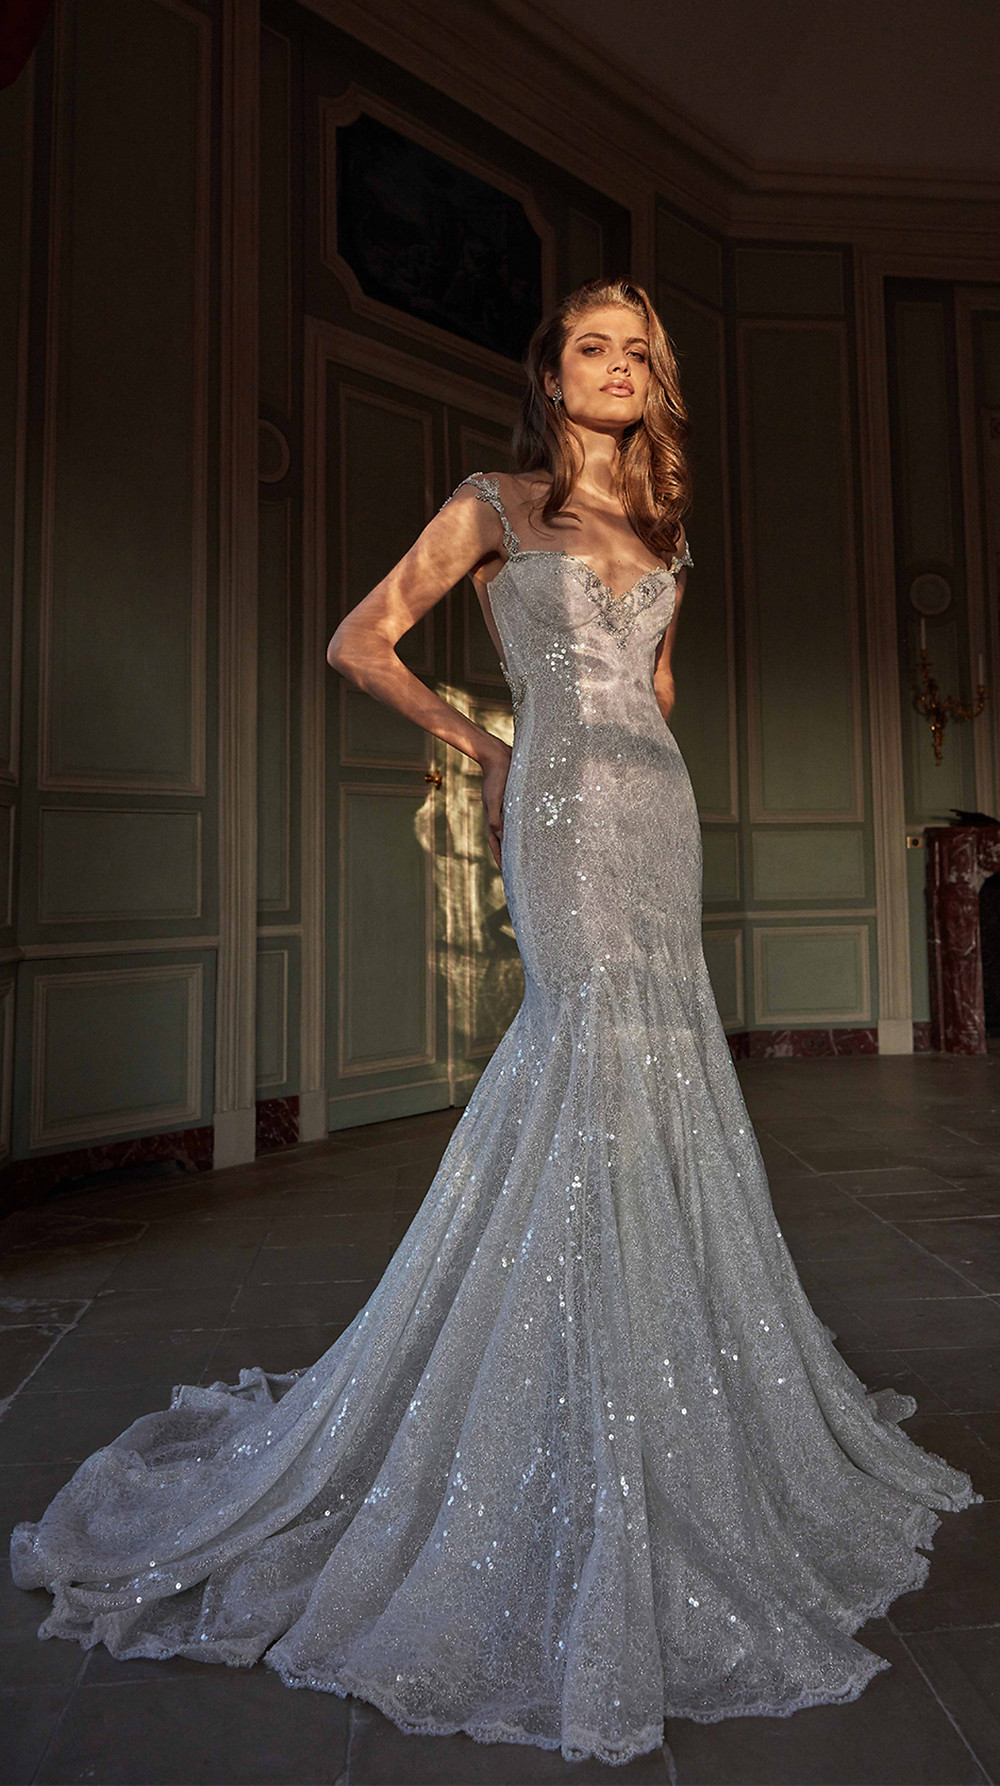 A soft mermaid silhouette and shimmery layers of sparkle tulle that reflect the light like glass, give this wedding gown a glamorous edge and a sheer low back made of delicate French lace atop a silver netting with hand-embroidered bow motifs make it ultra elegant